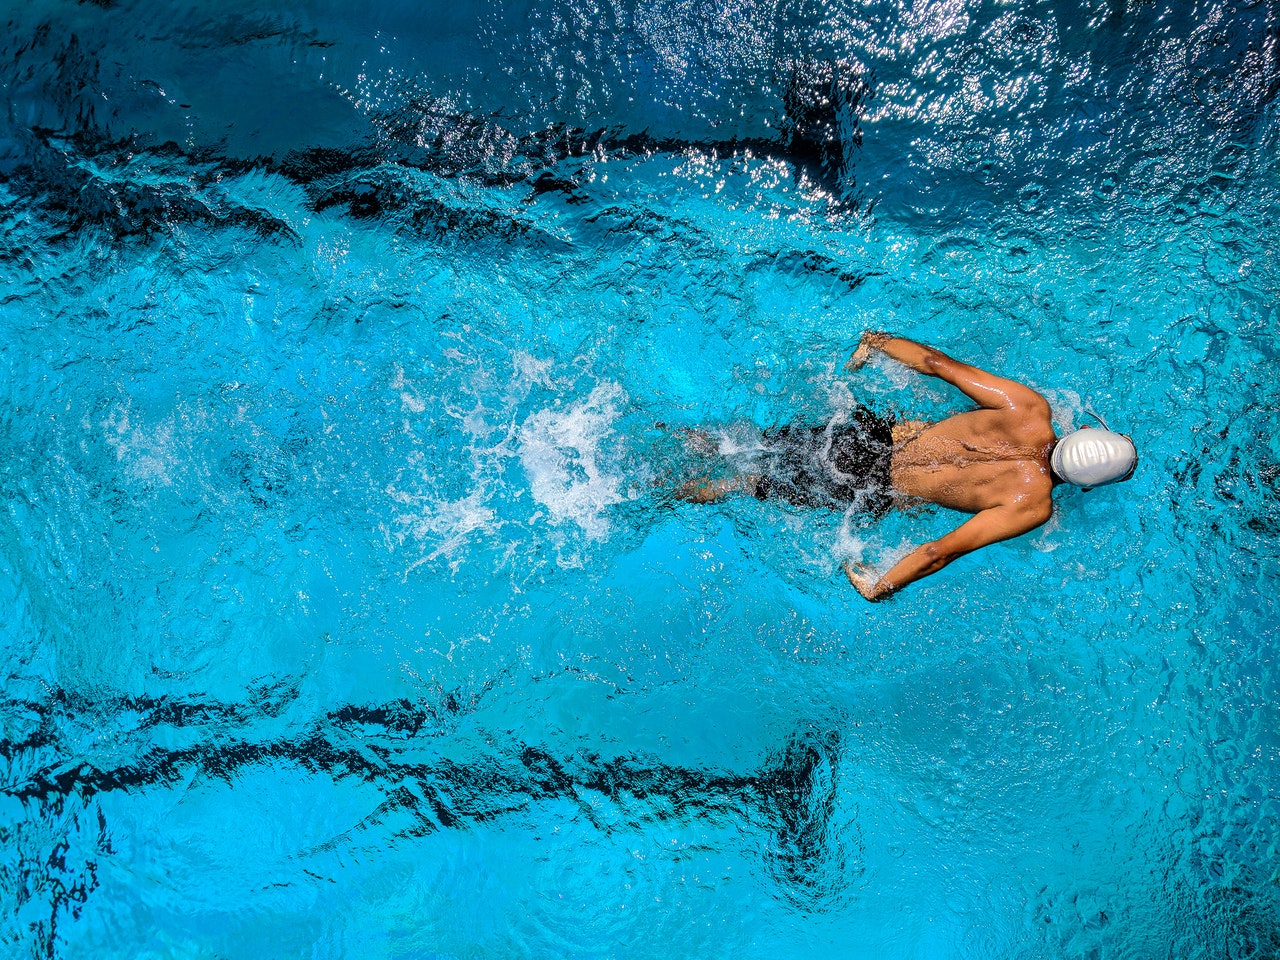 Swim Podcasts Are Taking Off: Here Are 6 of the Hottest